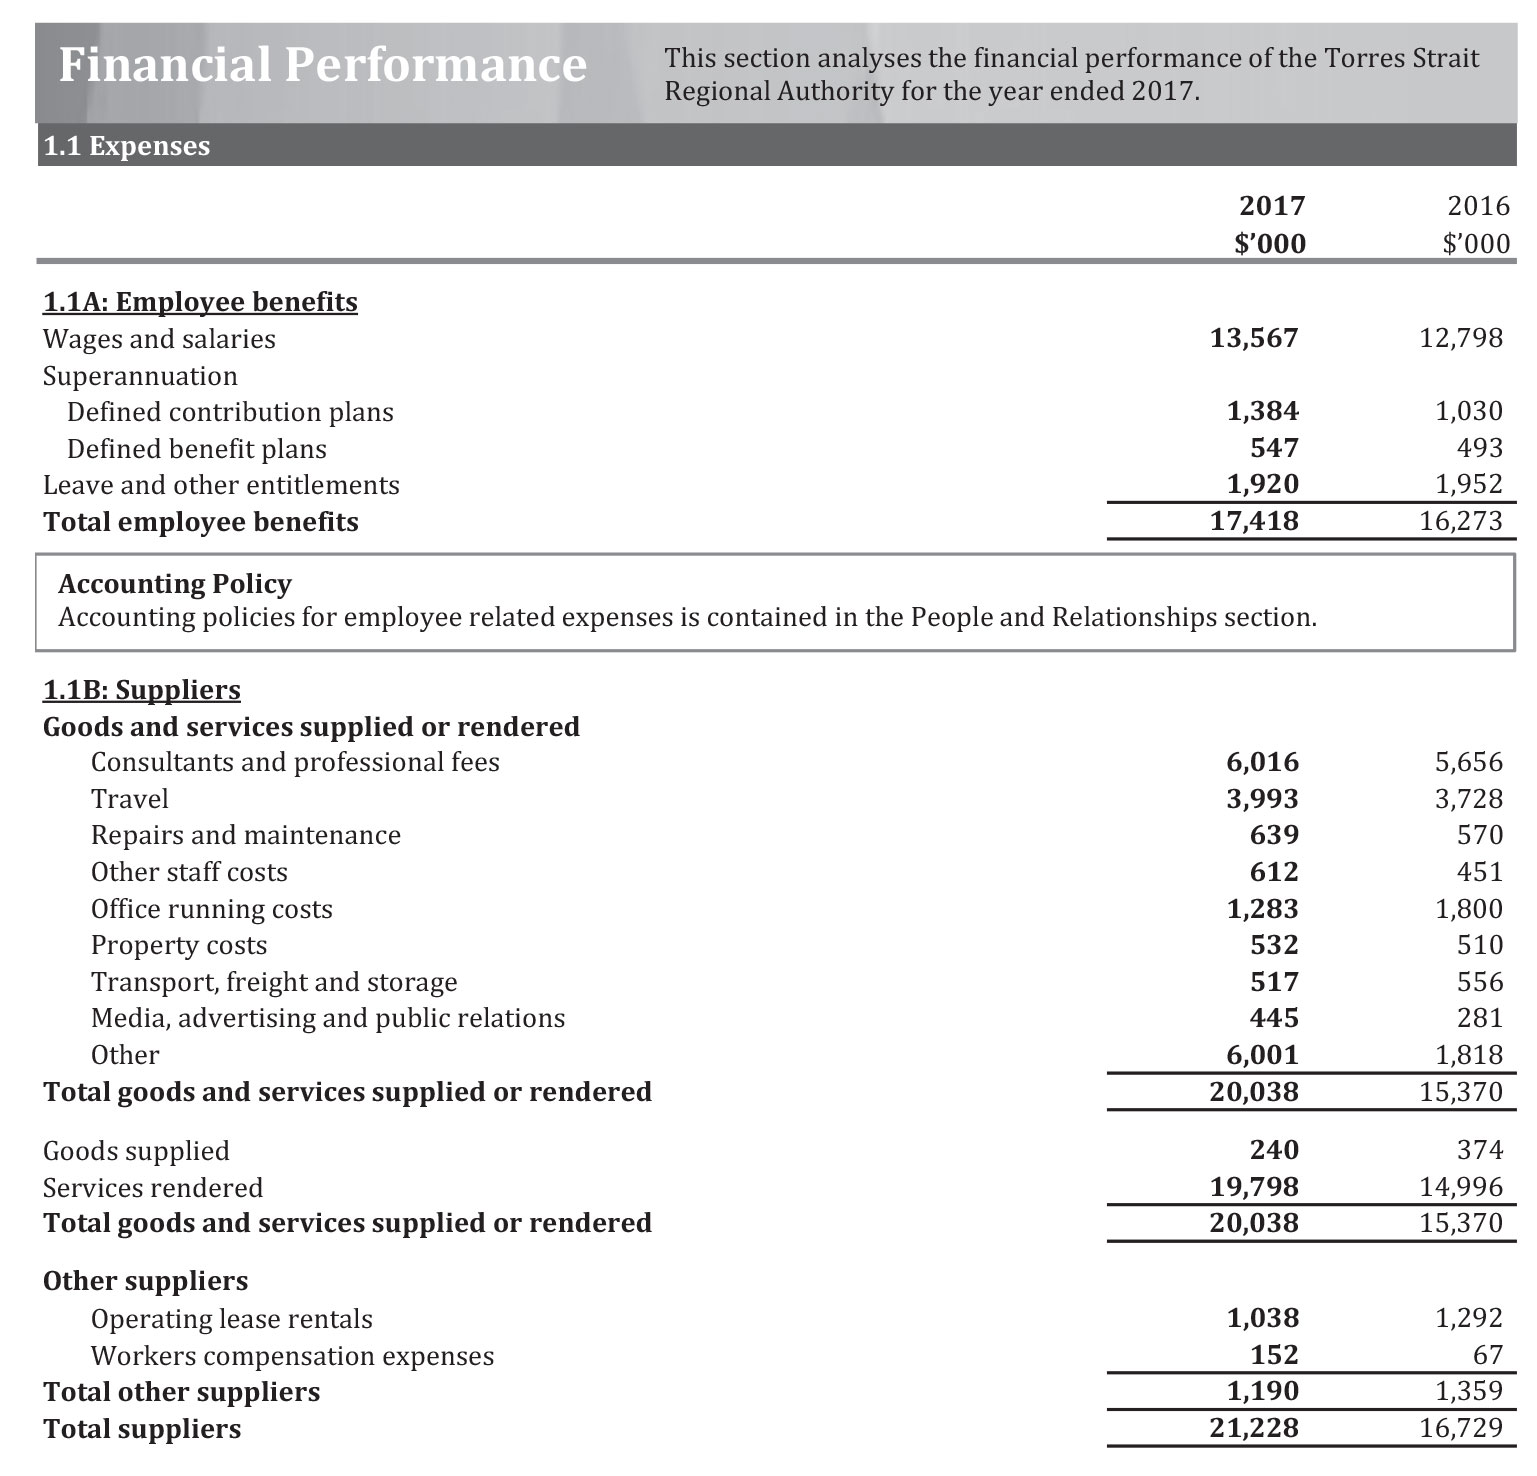 a photograph of Financial Performance document (page 1)